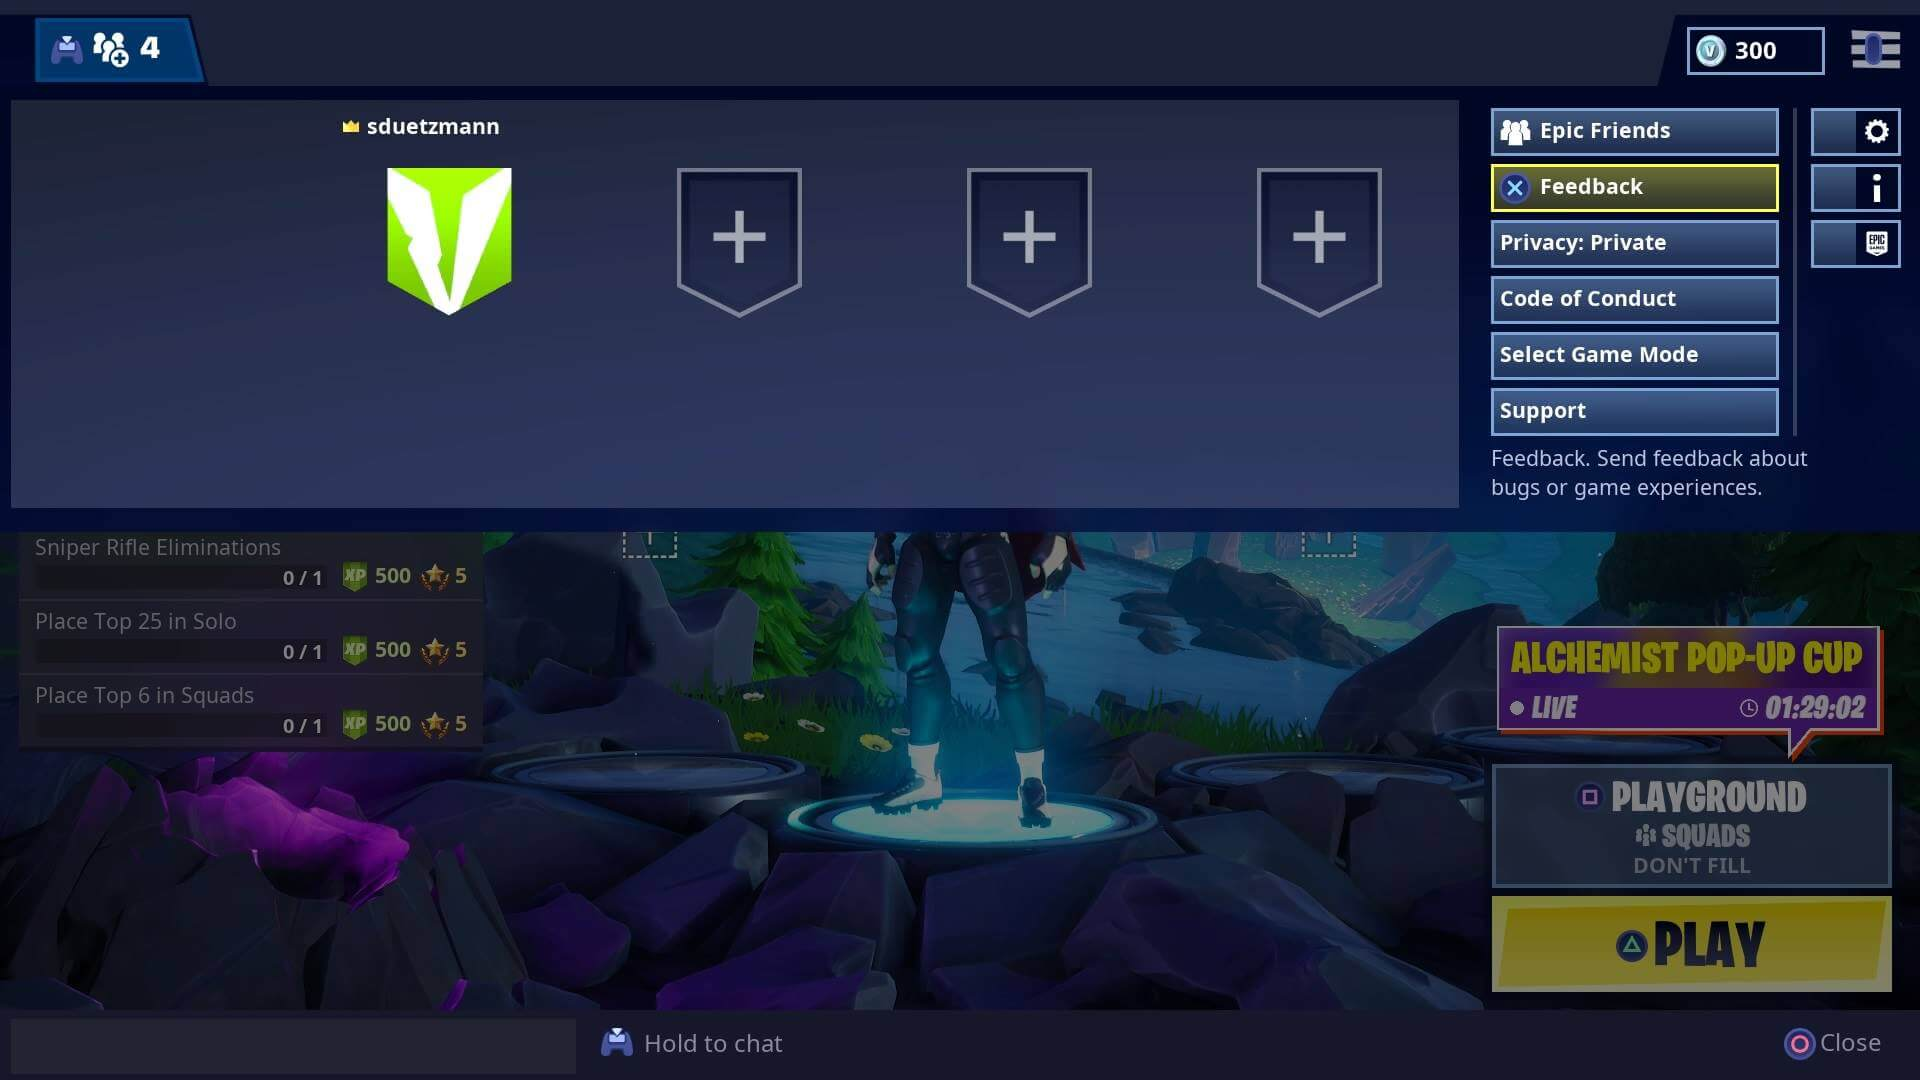 Parental Controls for Fortnite: Battle Royale on PlayStation 4 –